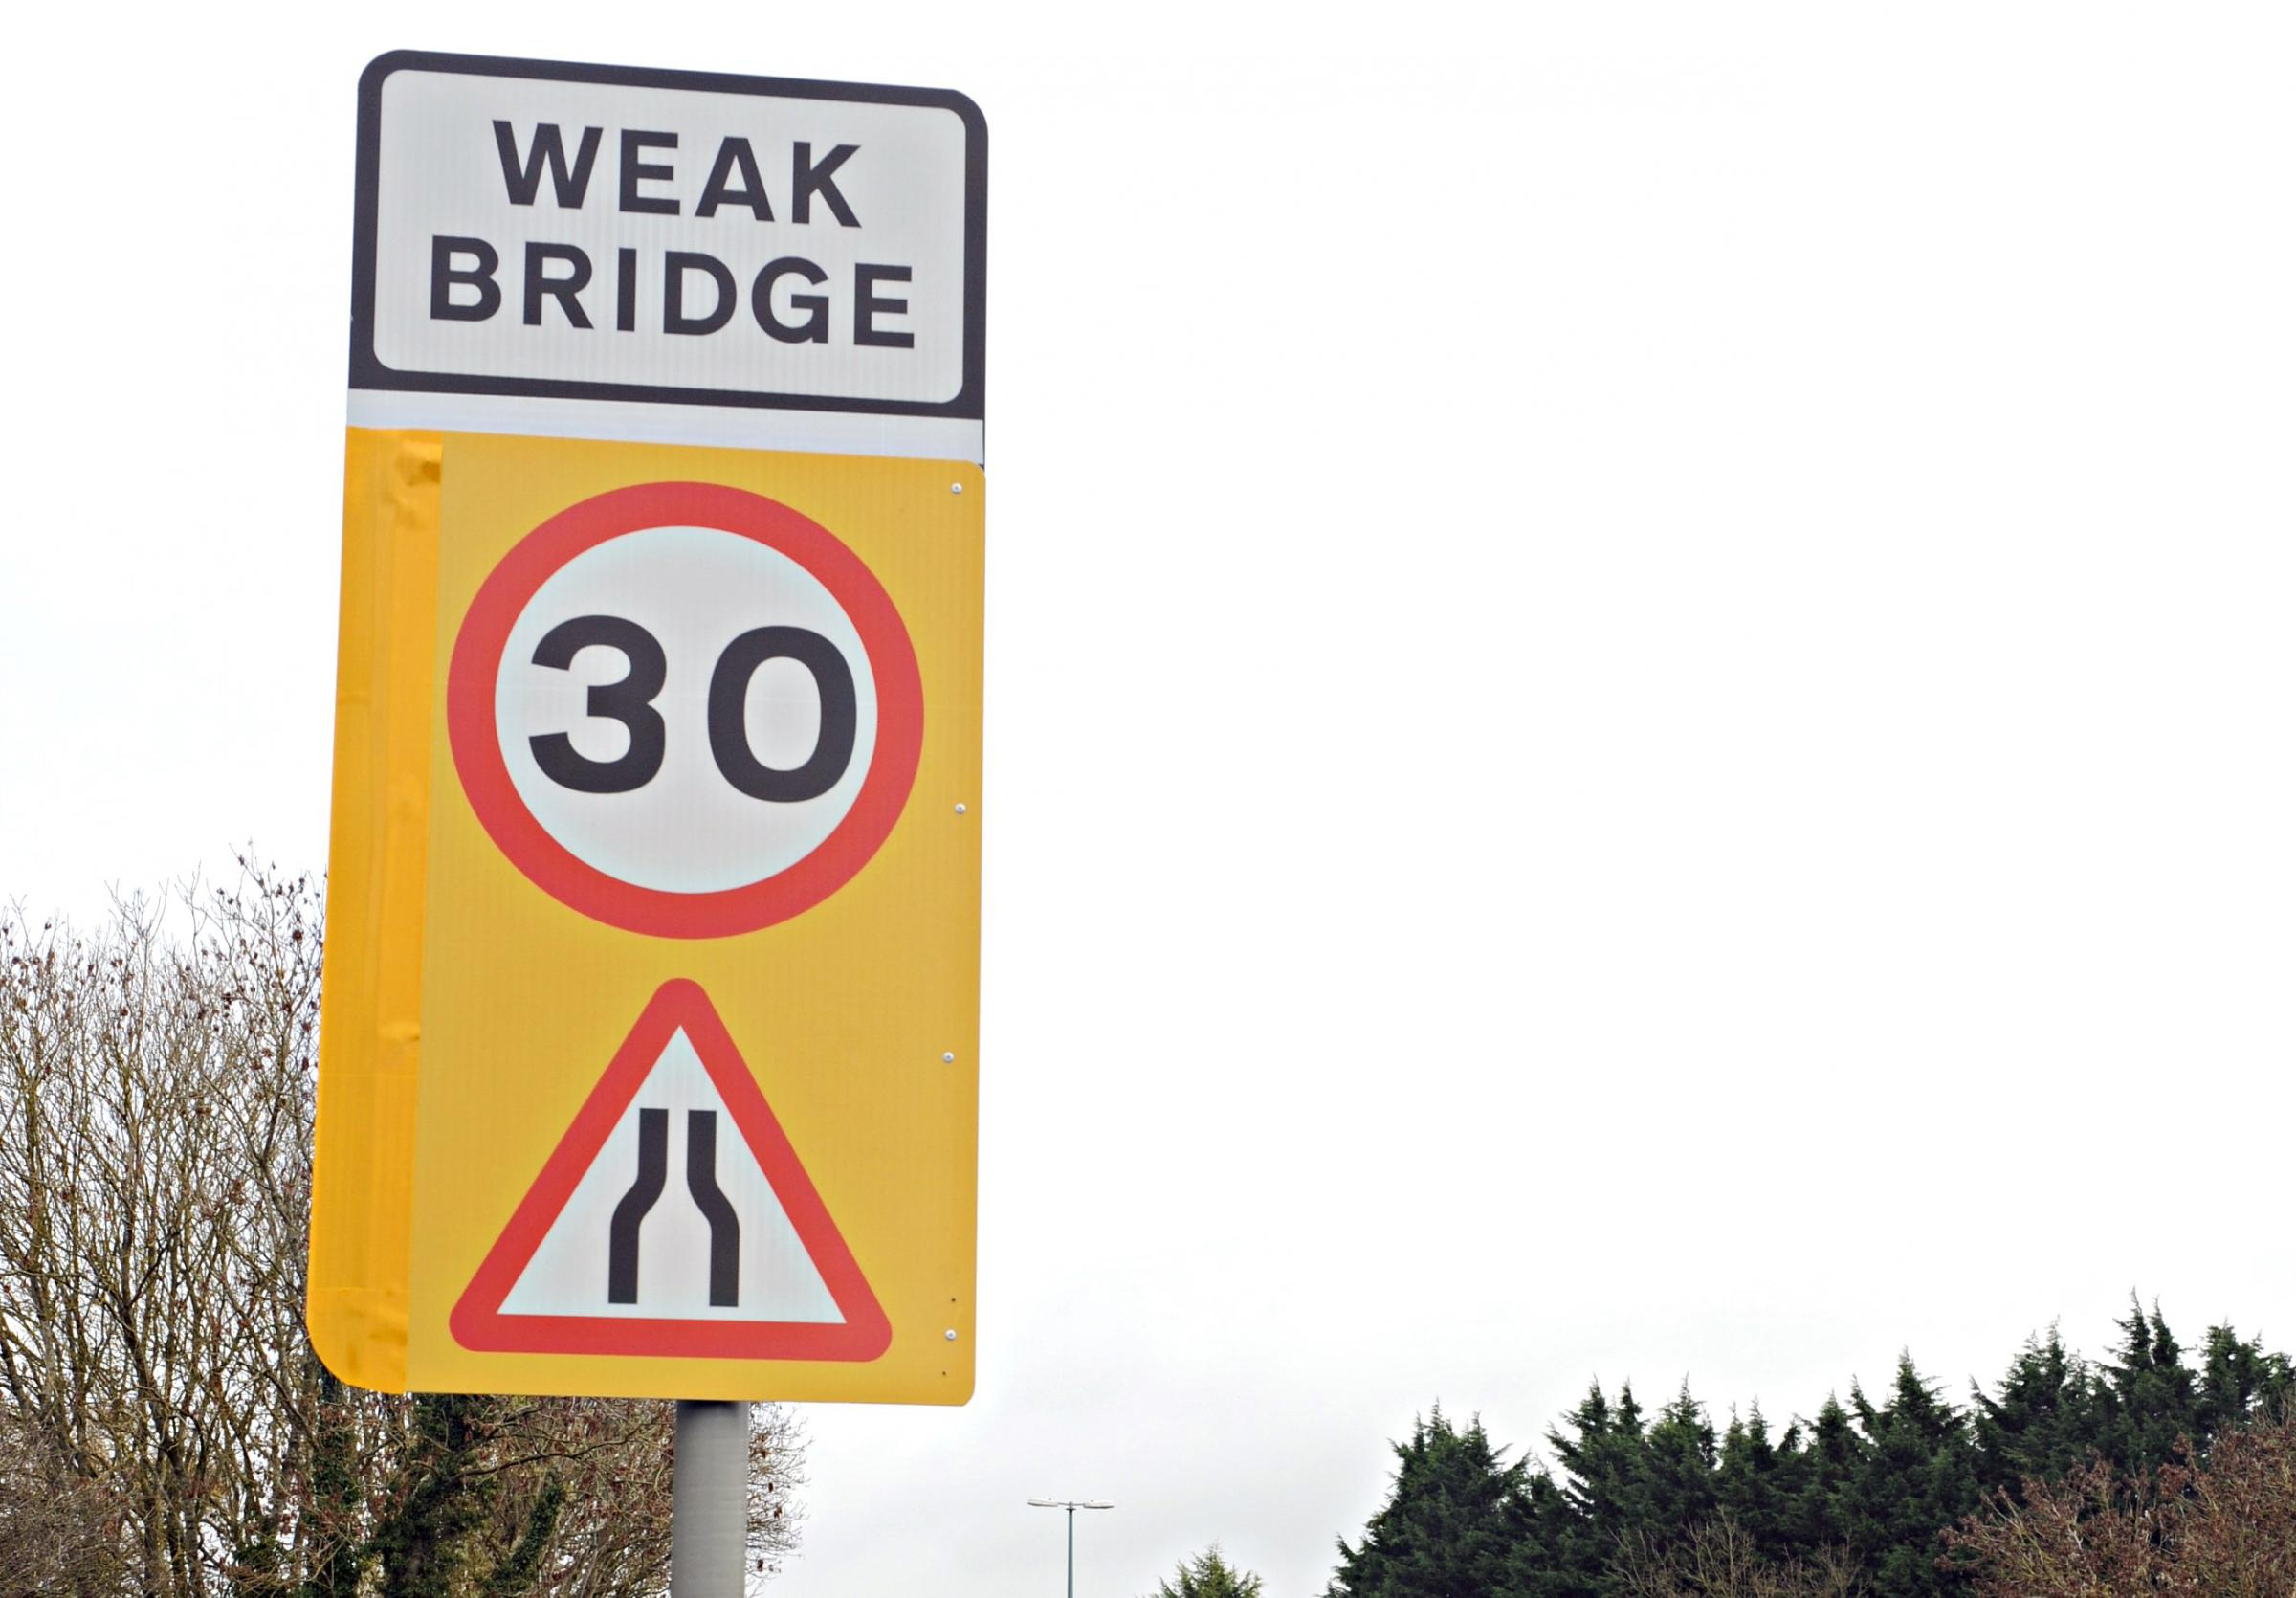 The new signs at the Berkeley Road bridge on the A38